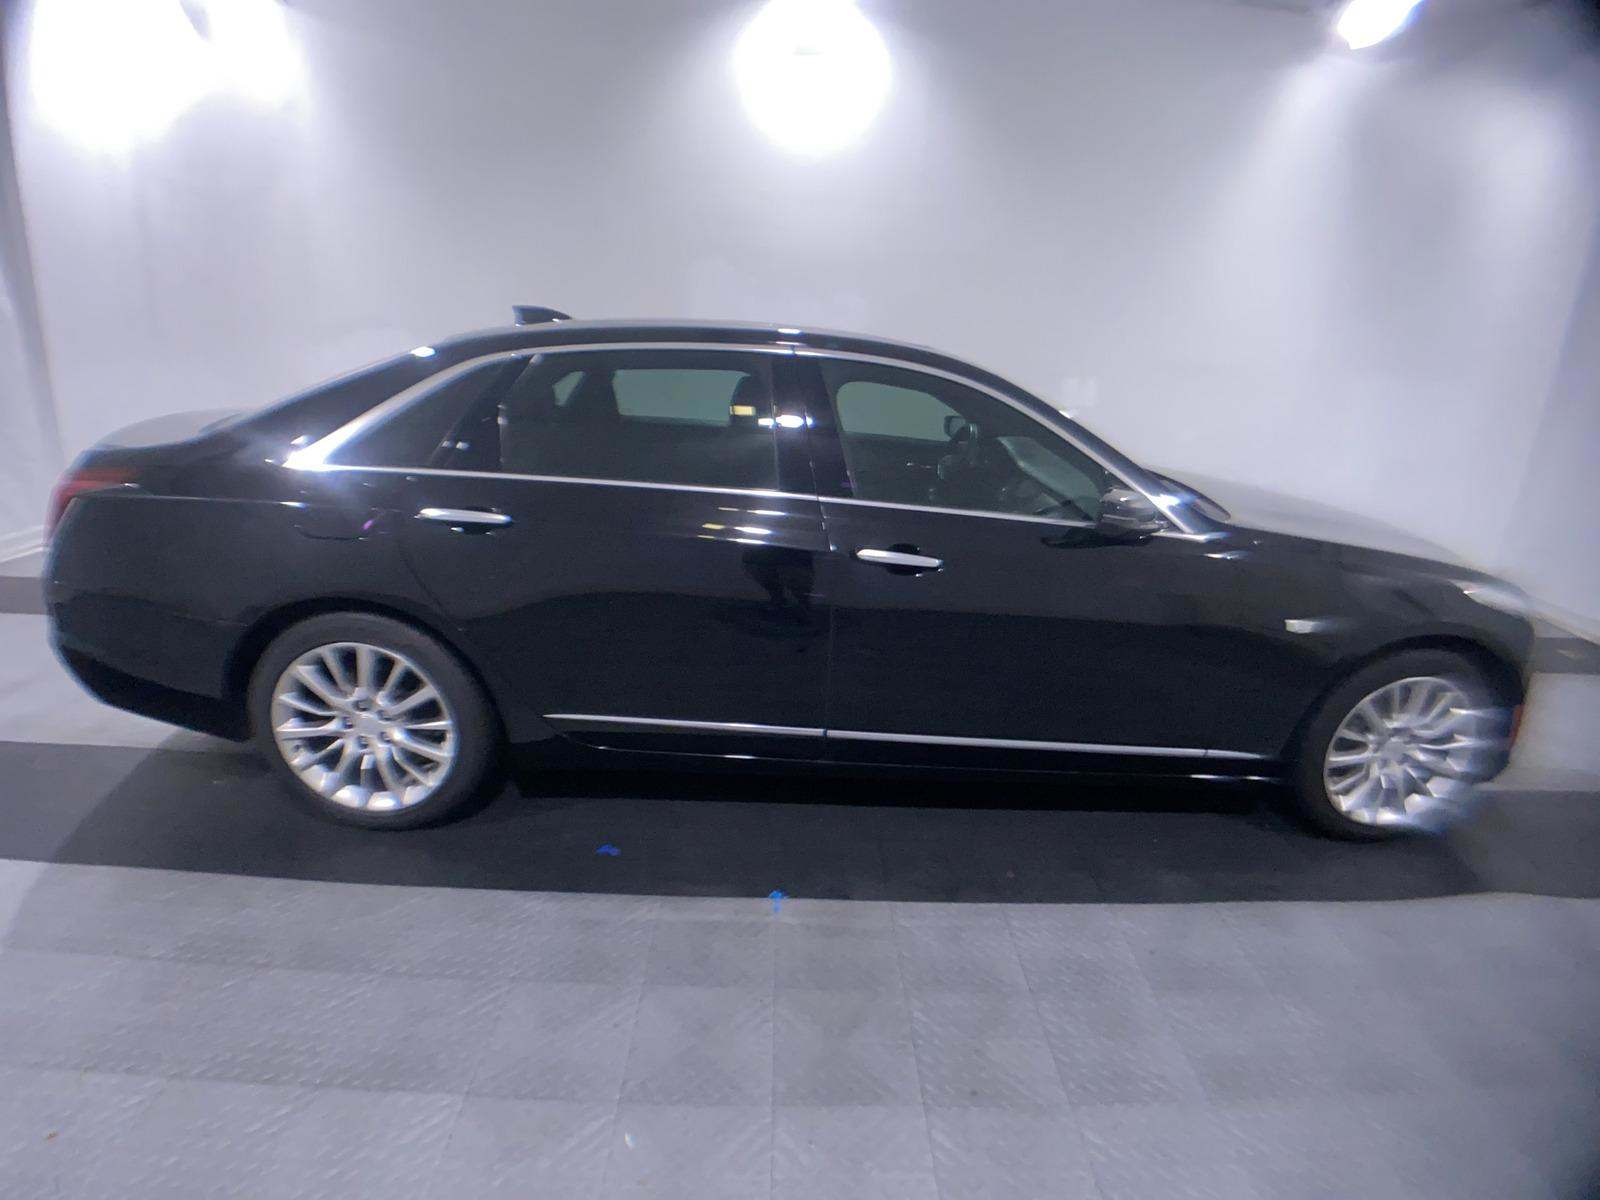 Used 2018 Cadillac CT6 For Sale ($29,380)   Vroom